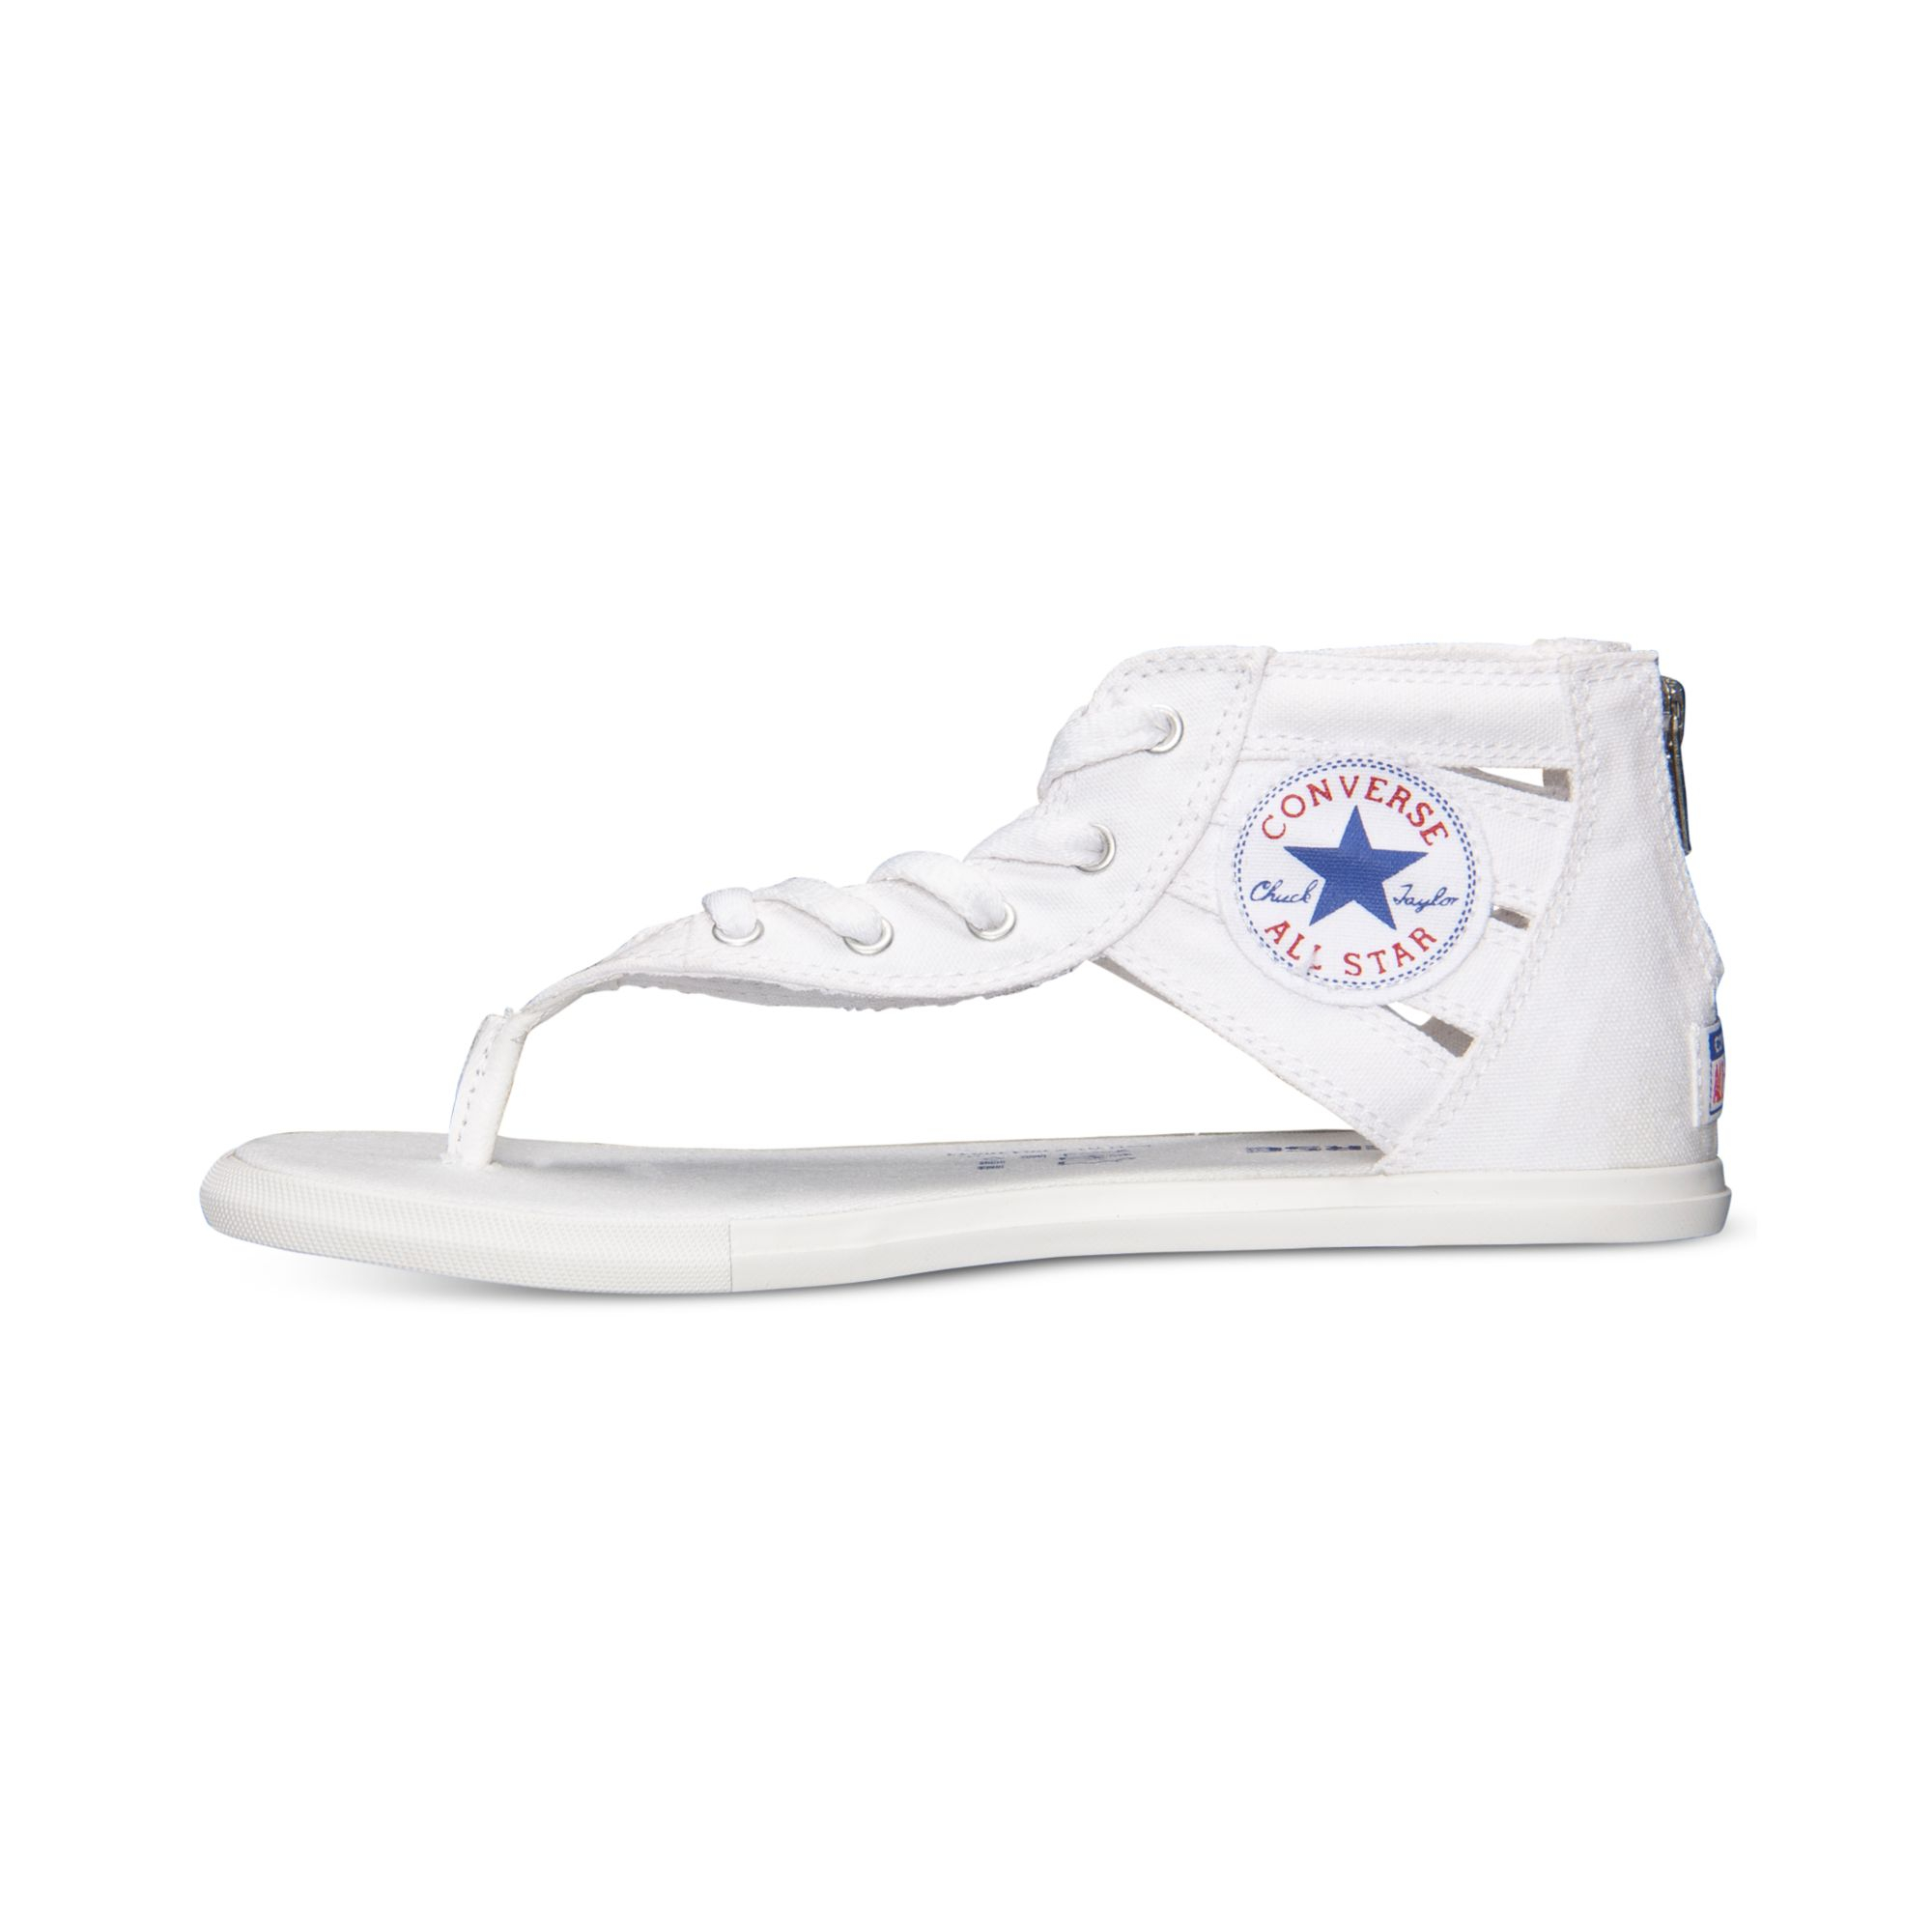 Fantastic Converse Womens Sandals Shoes Chuck Taylor Gladiator White